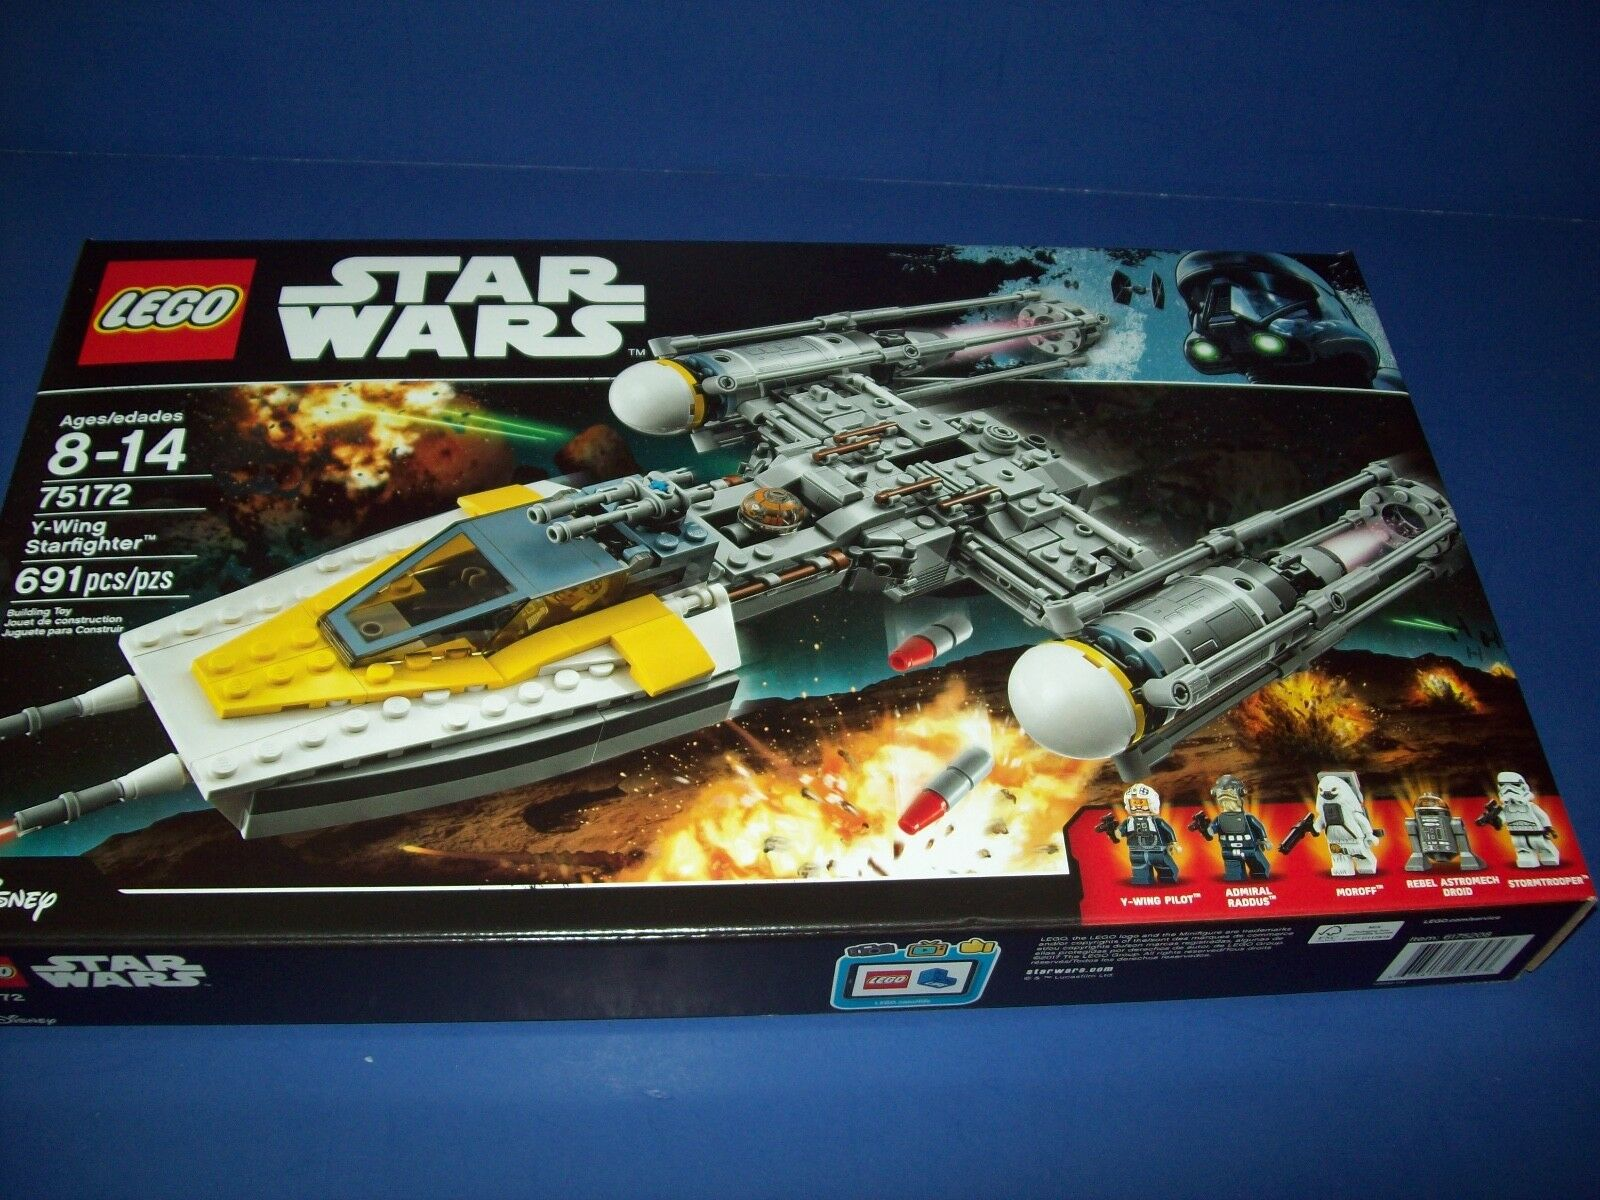 LEGO 75172 Star Wars Y-WING STARFIGHTER sealed 691 pieces 5 minifigures